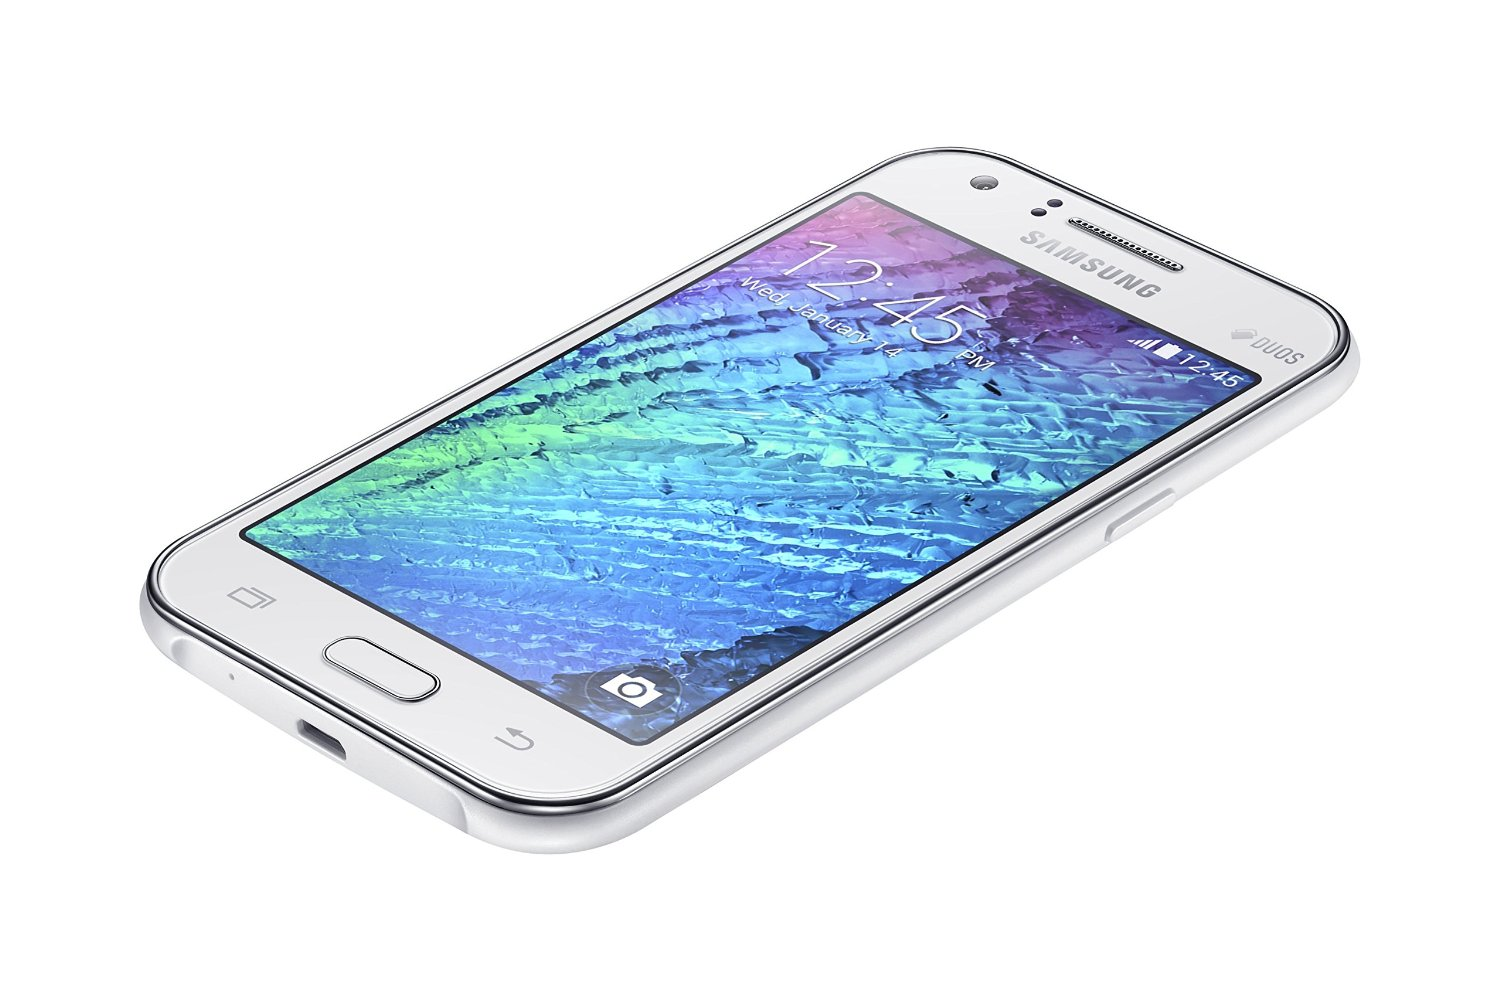 Samsung gets ready to launch Galaxy J5, J7 and J2 to take on Lenovo, Yuphoria